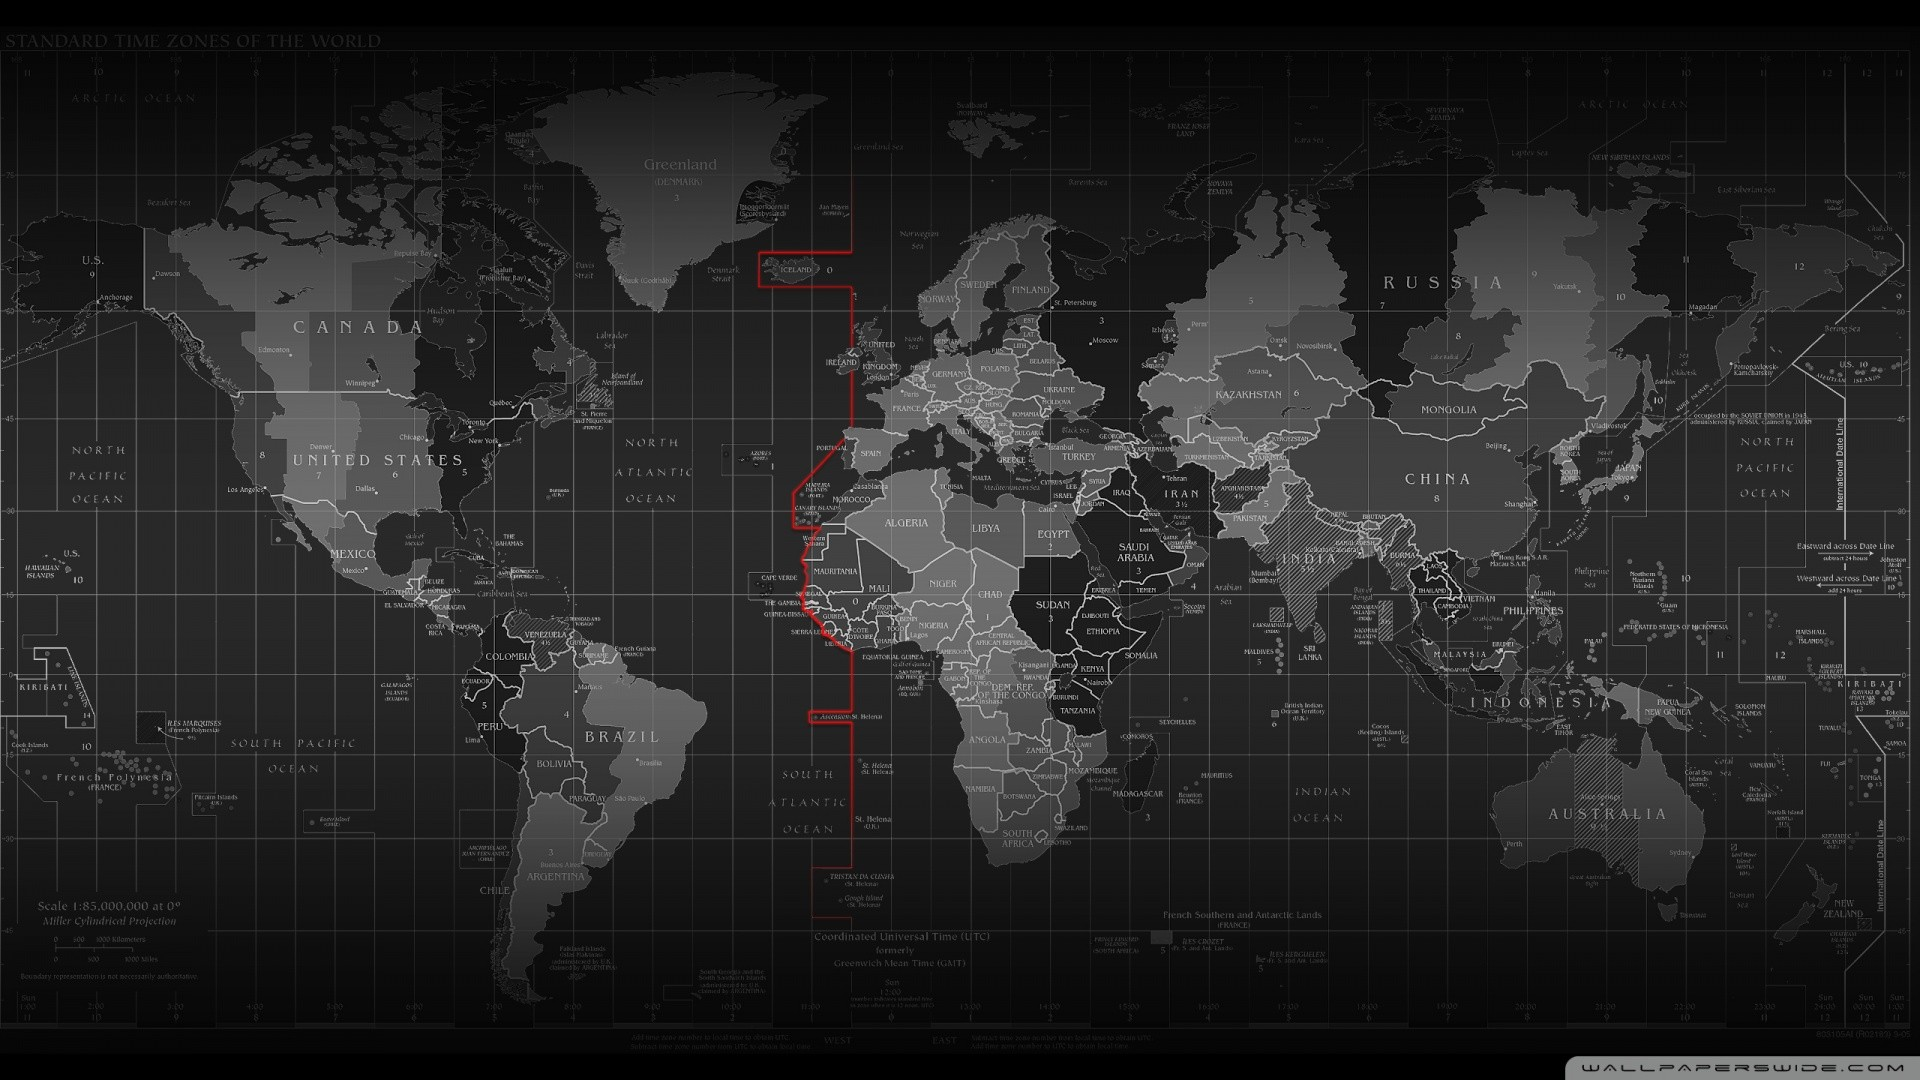 black and white cartography continents maps time zones wallpaper HD